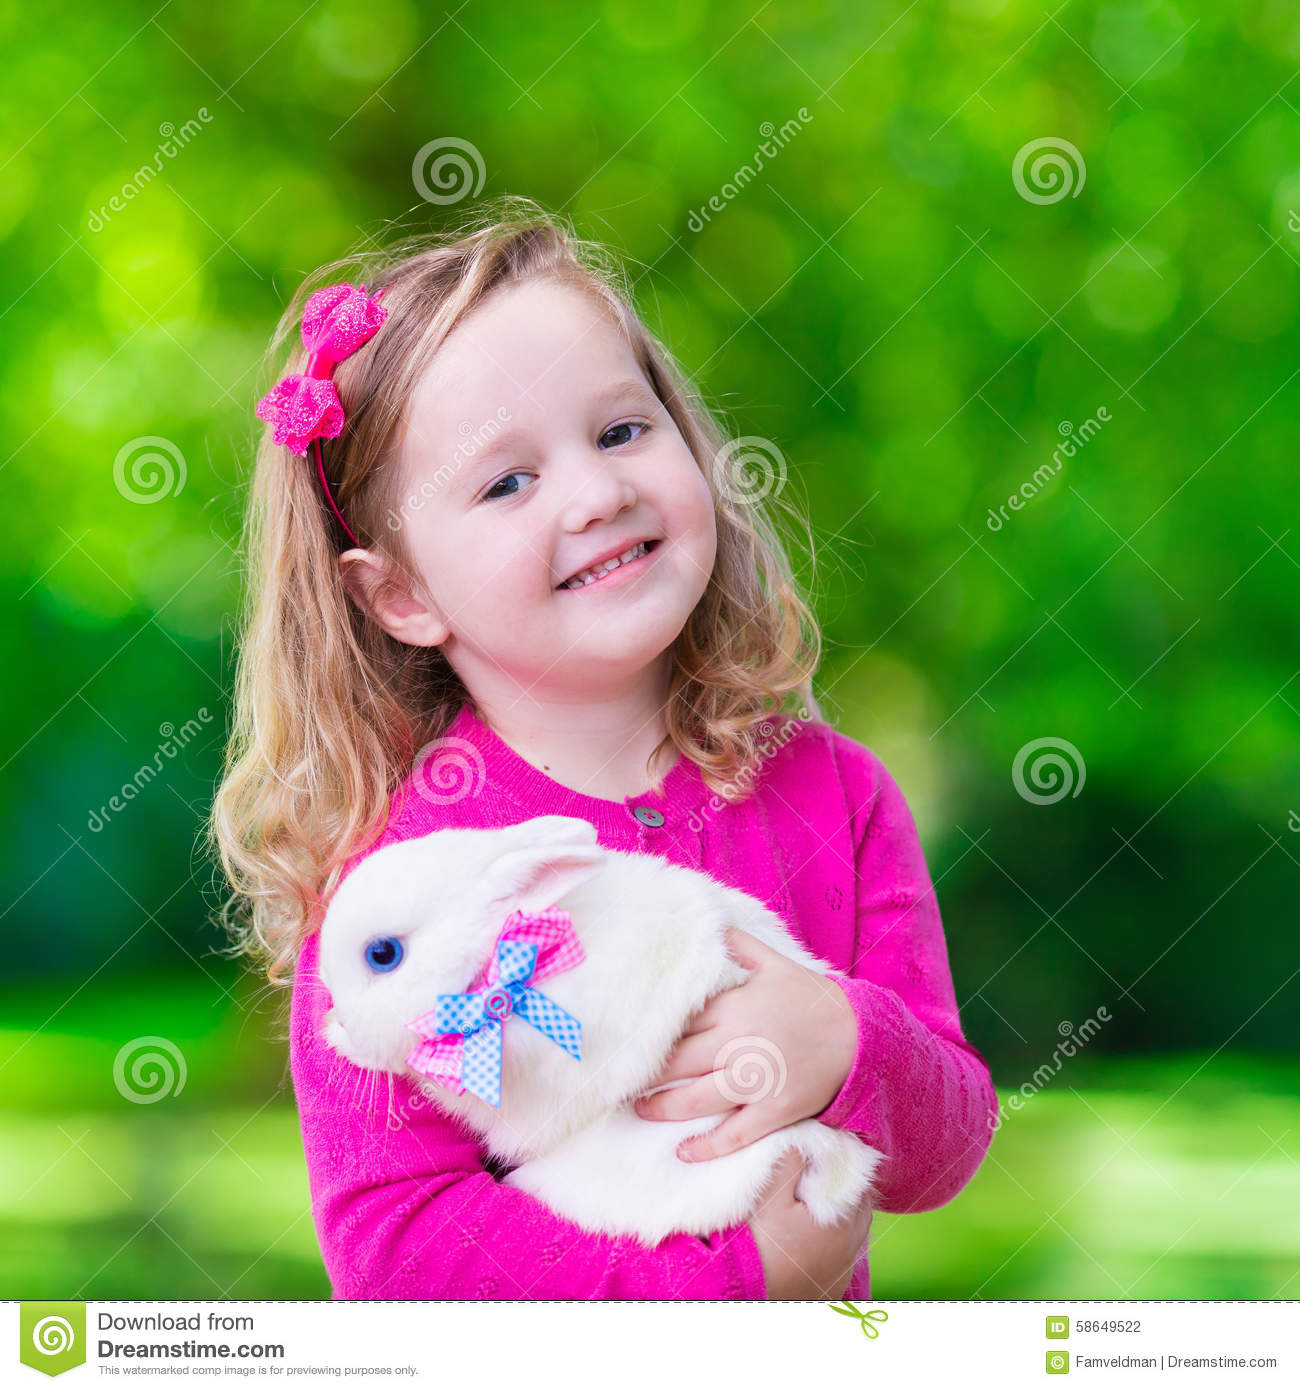 Baby Girl Wallpaper: Little Girl Playing With Rabbit Stock Photo